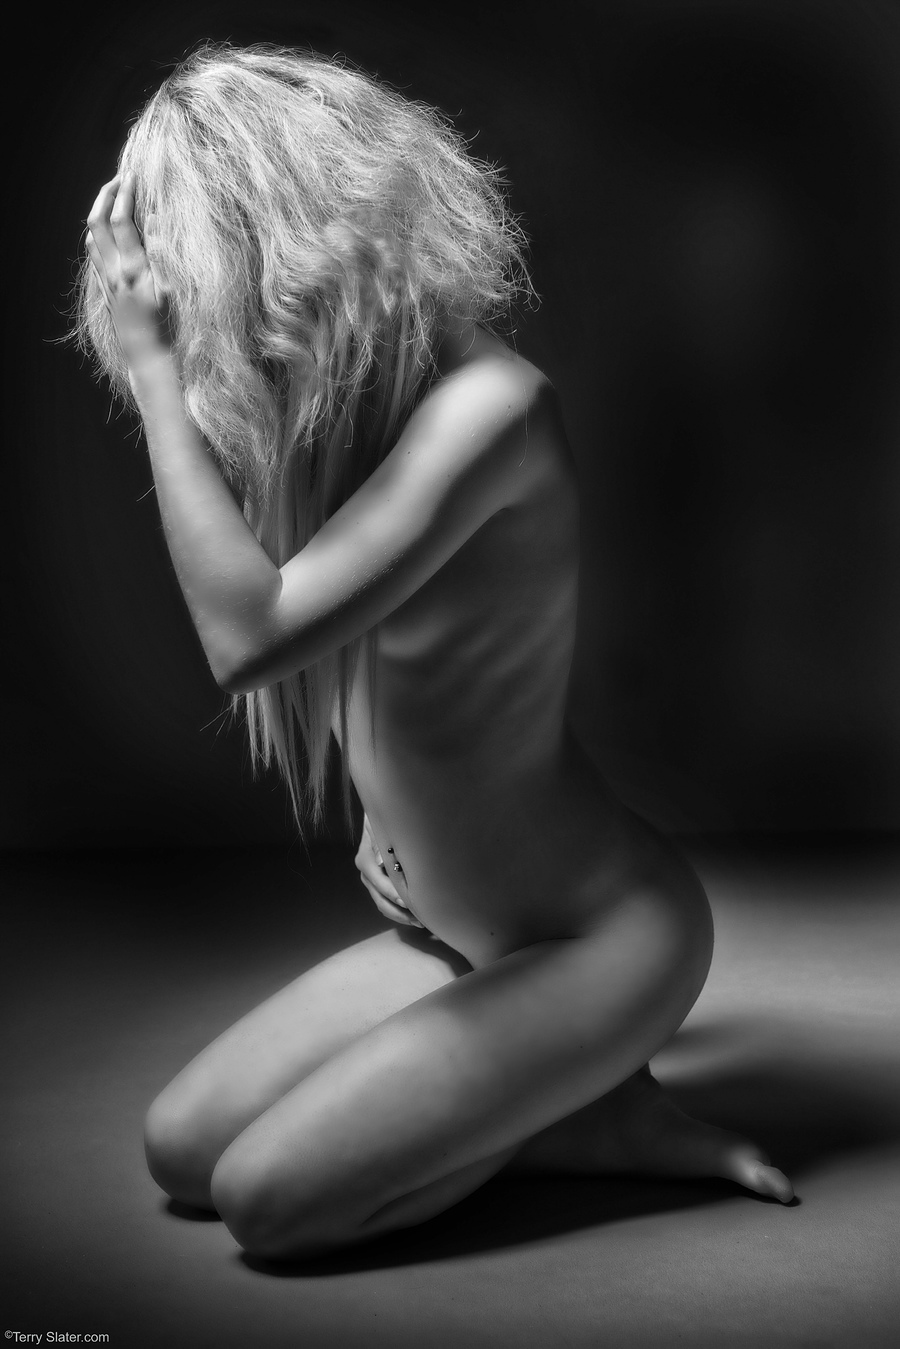 Artistic concealed nude